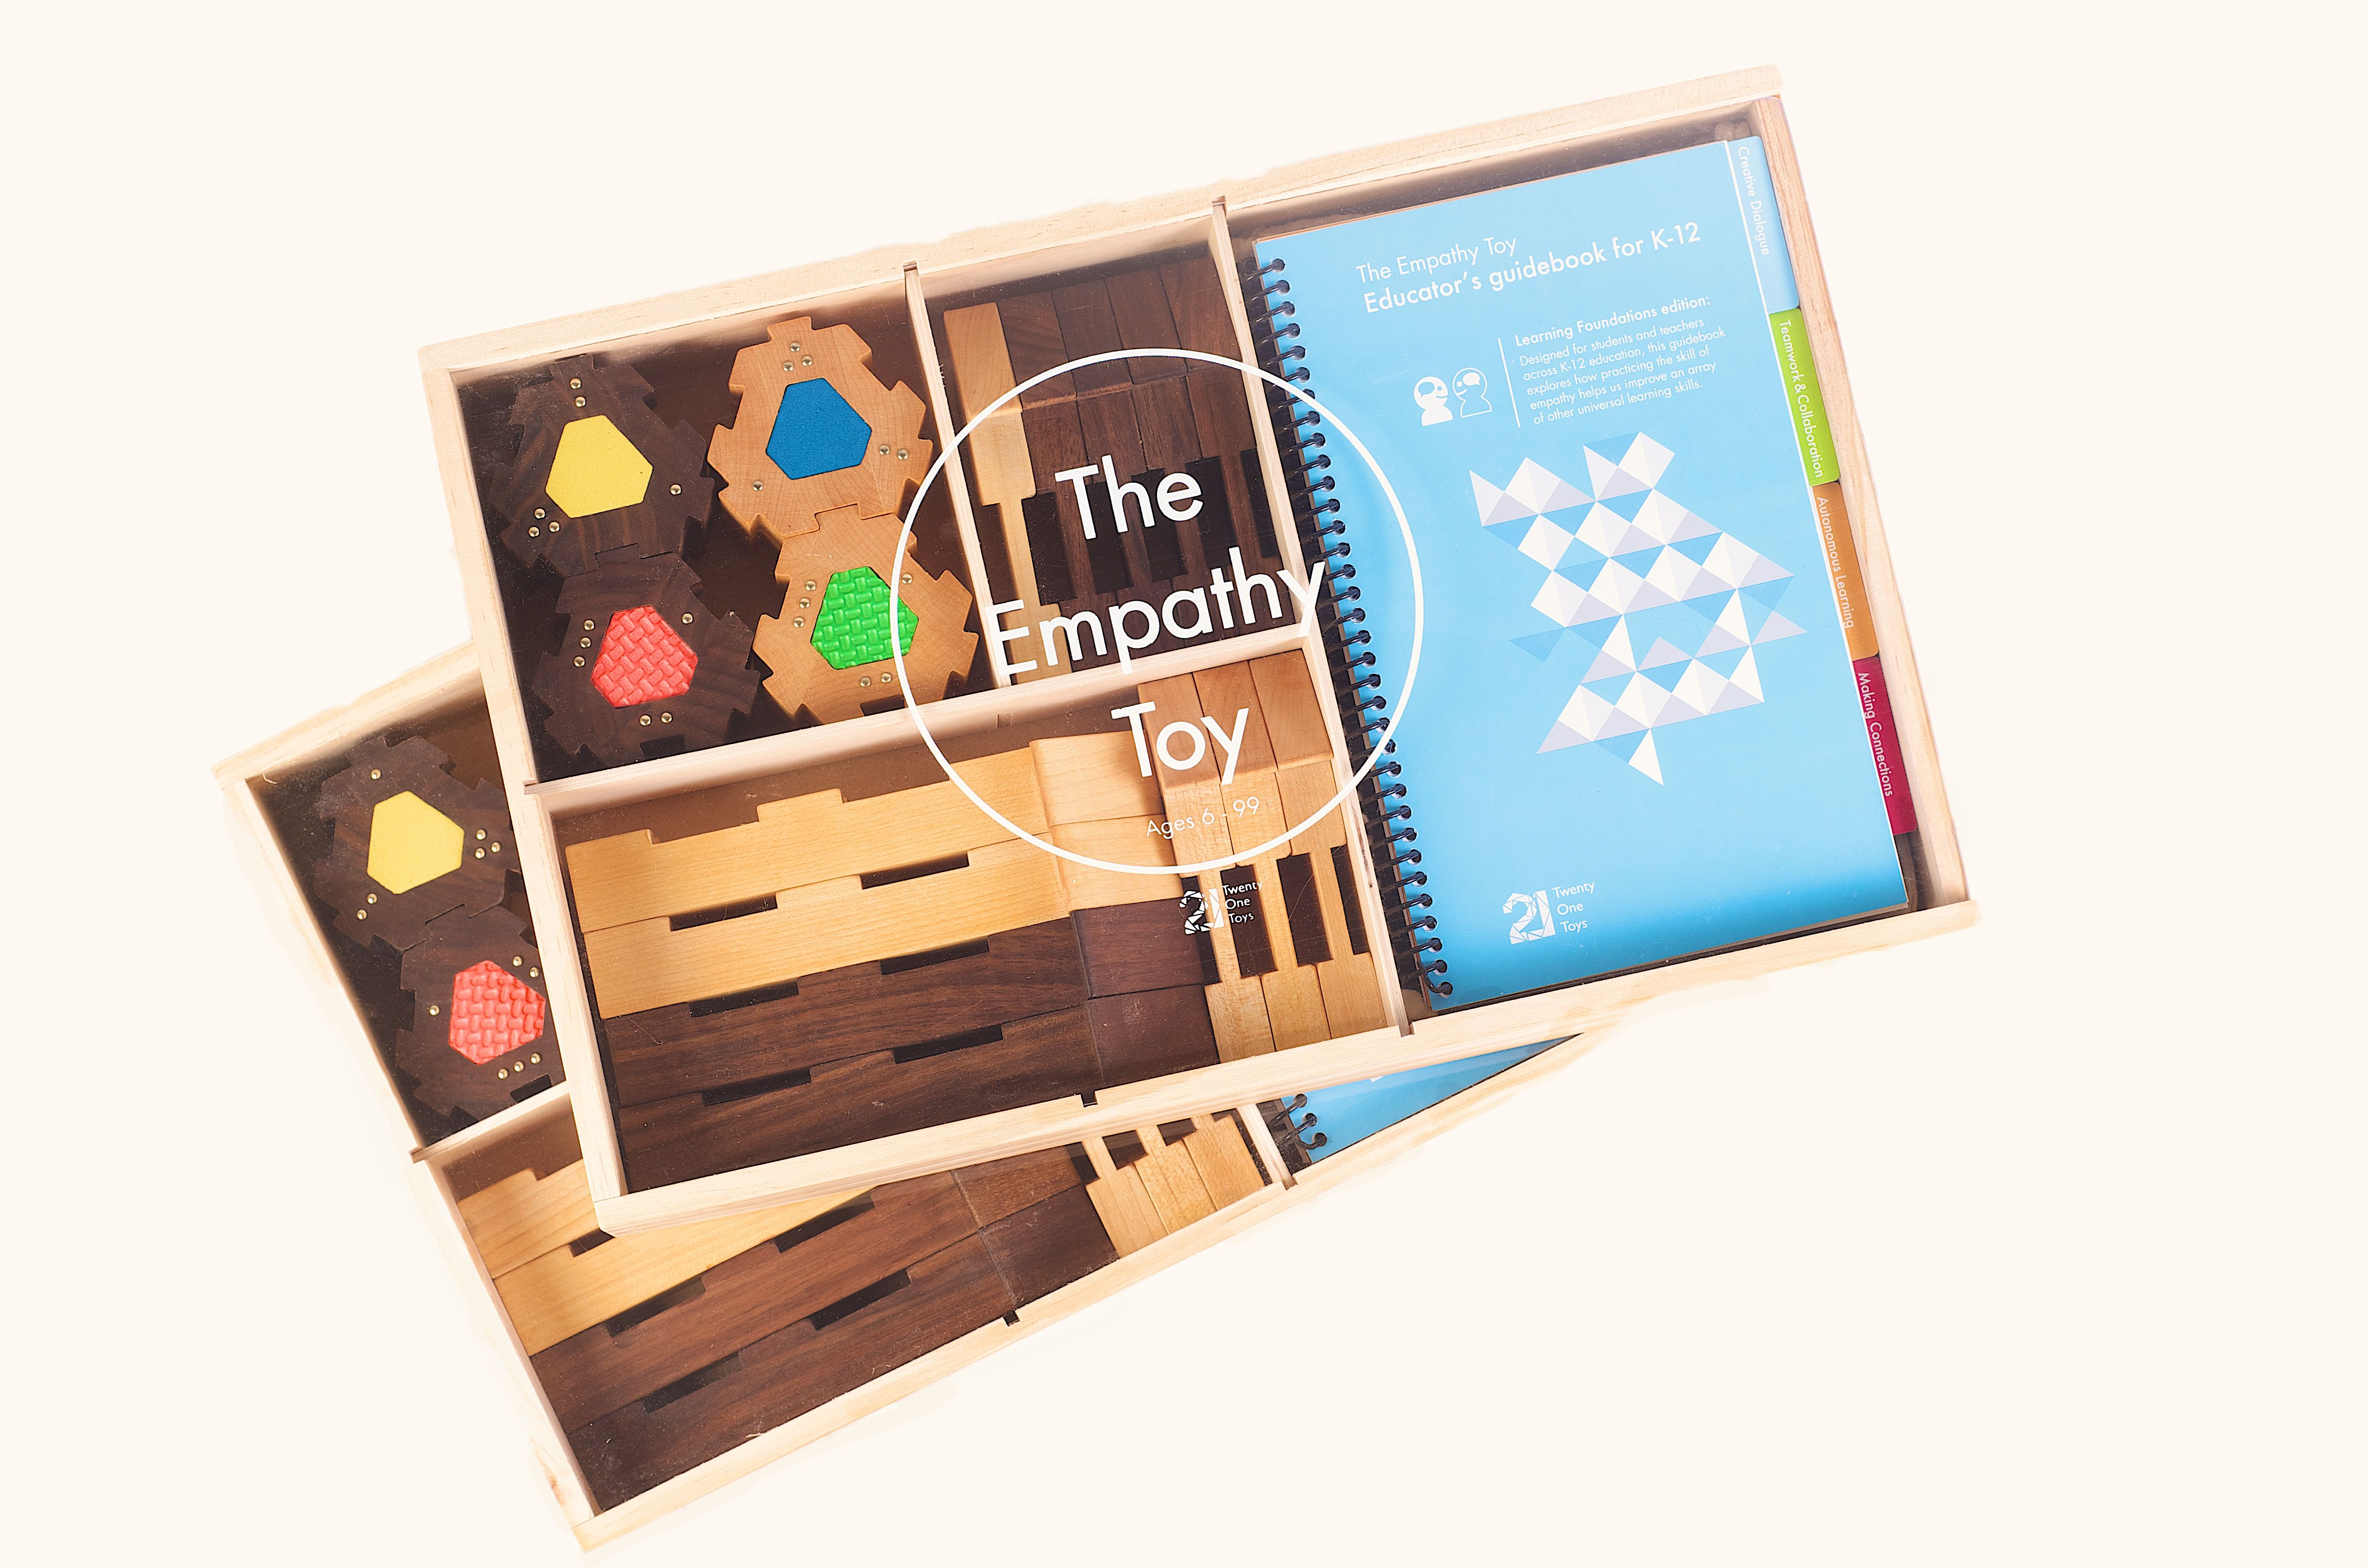 Two Empathy Toy Educator's Double Sets. | Cool tools ...